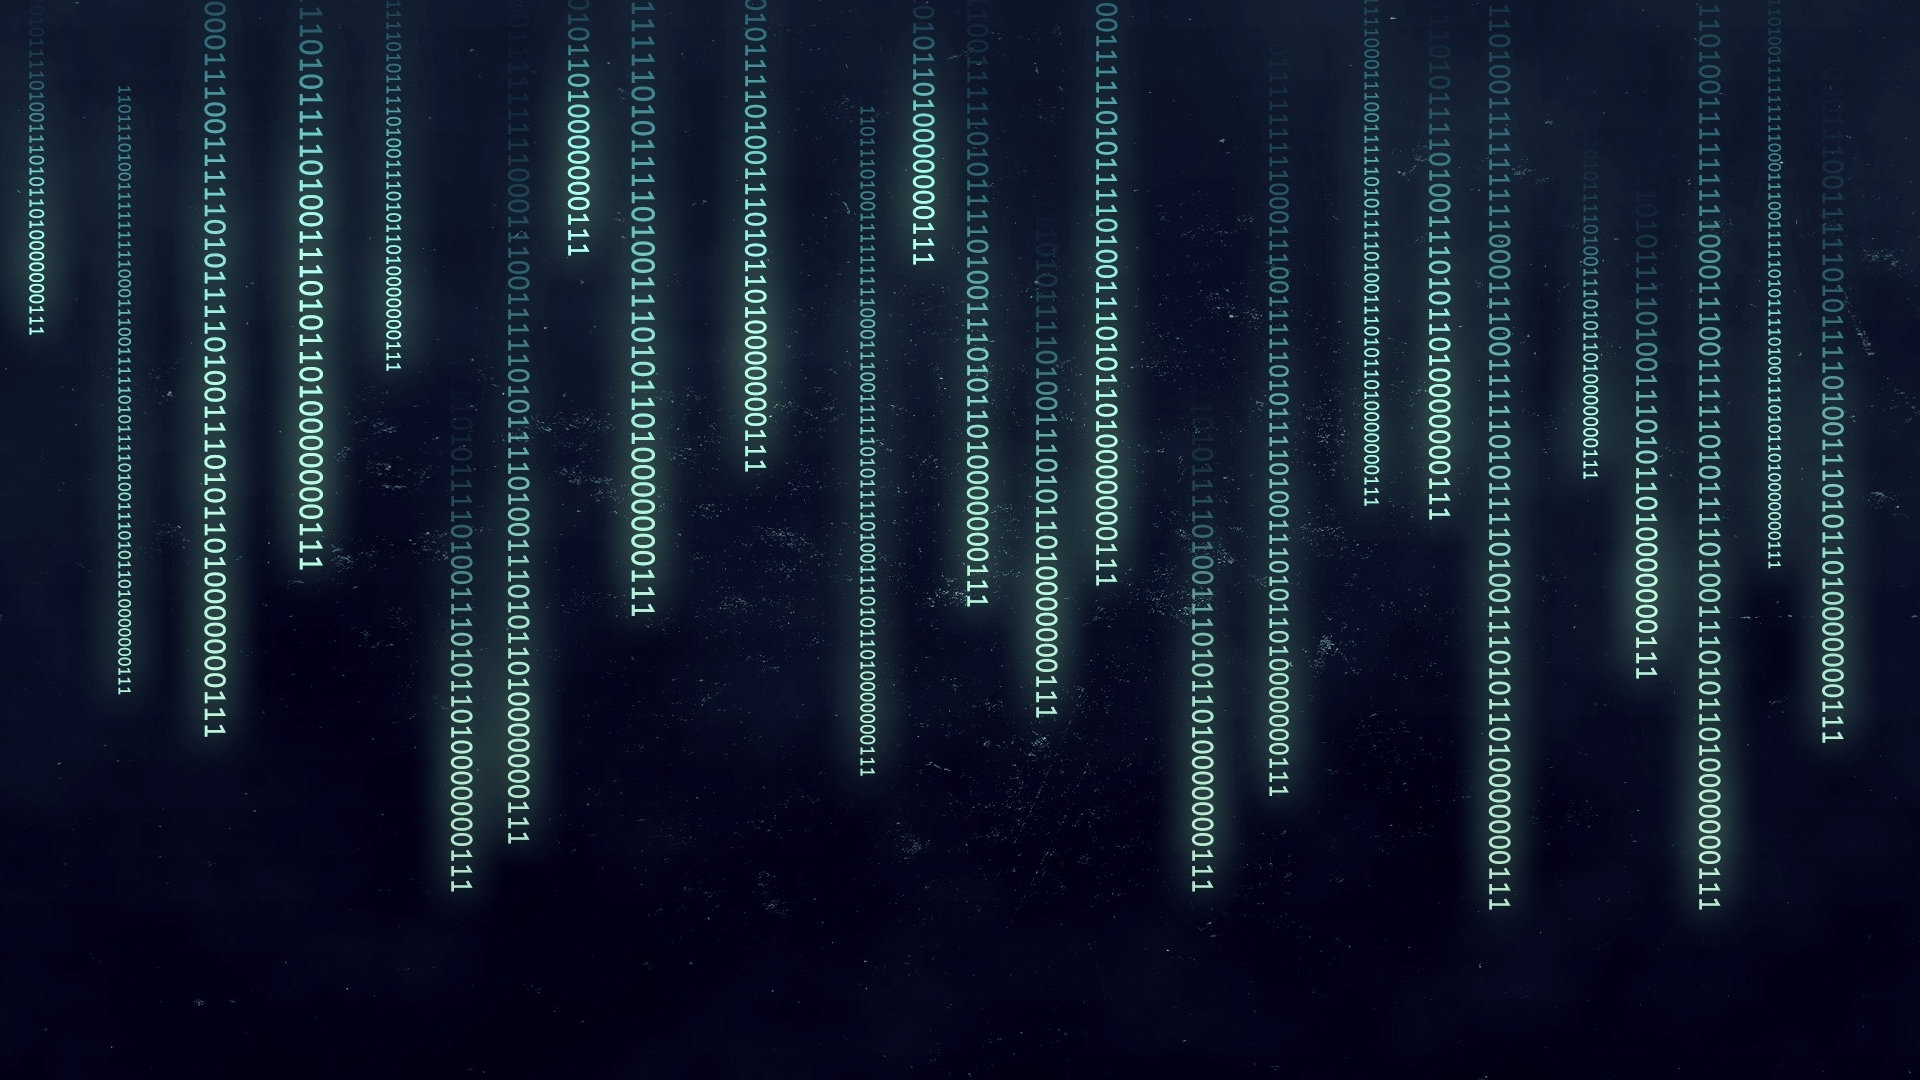 Binary data stream Mac Wallpaper Download AllMacWallpaper 1920x1080